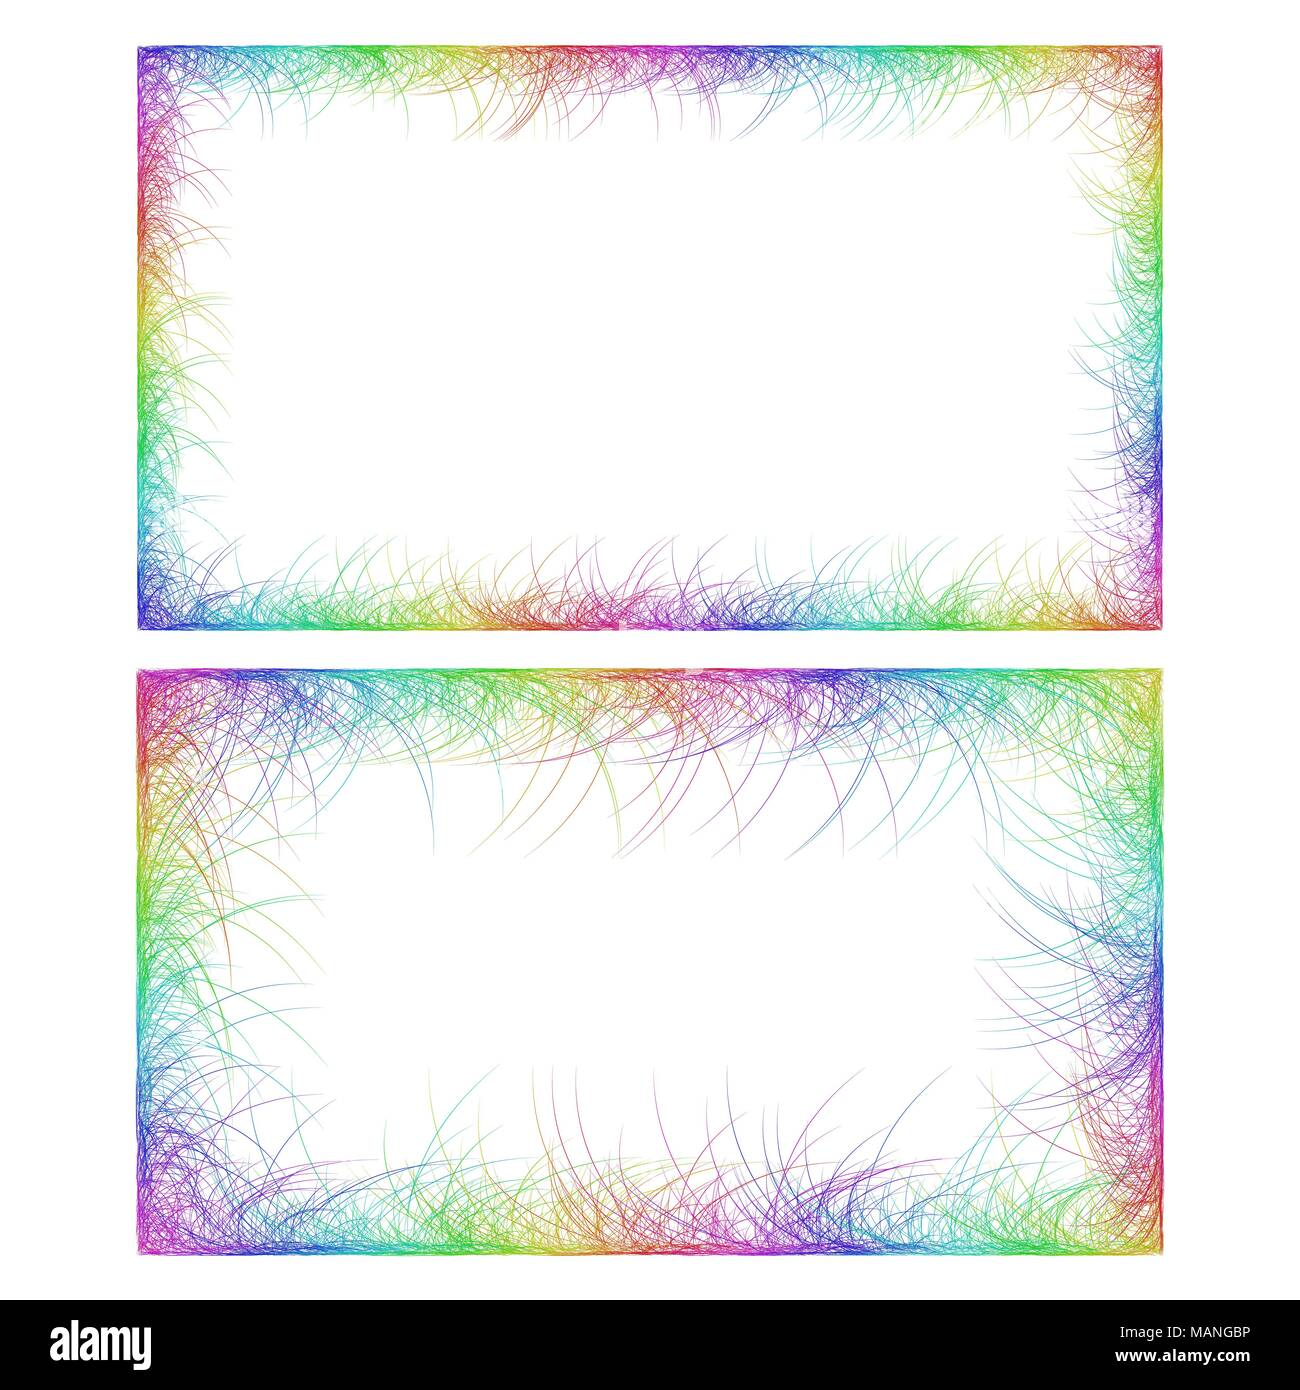 Business card border templates in rainbow colors stock vector art business card border templates in rainbow colors cheaphphosting Images